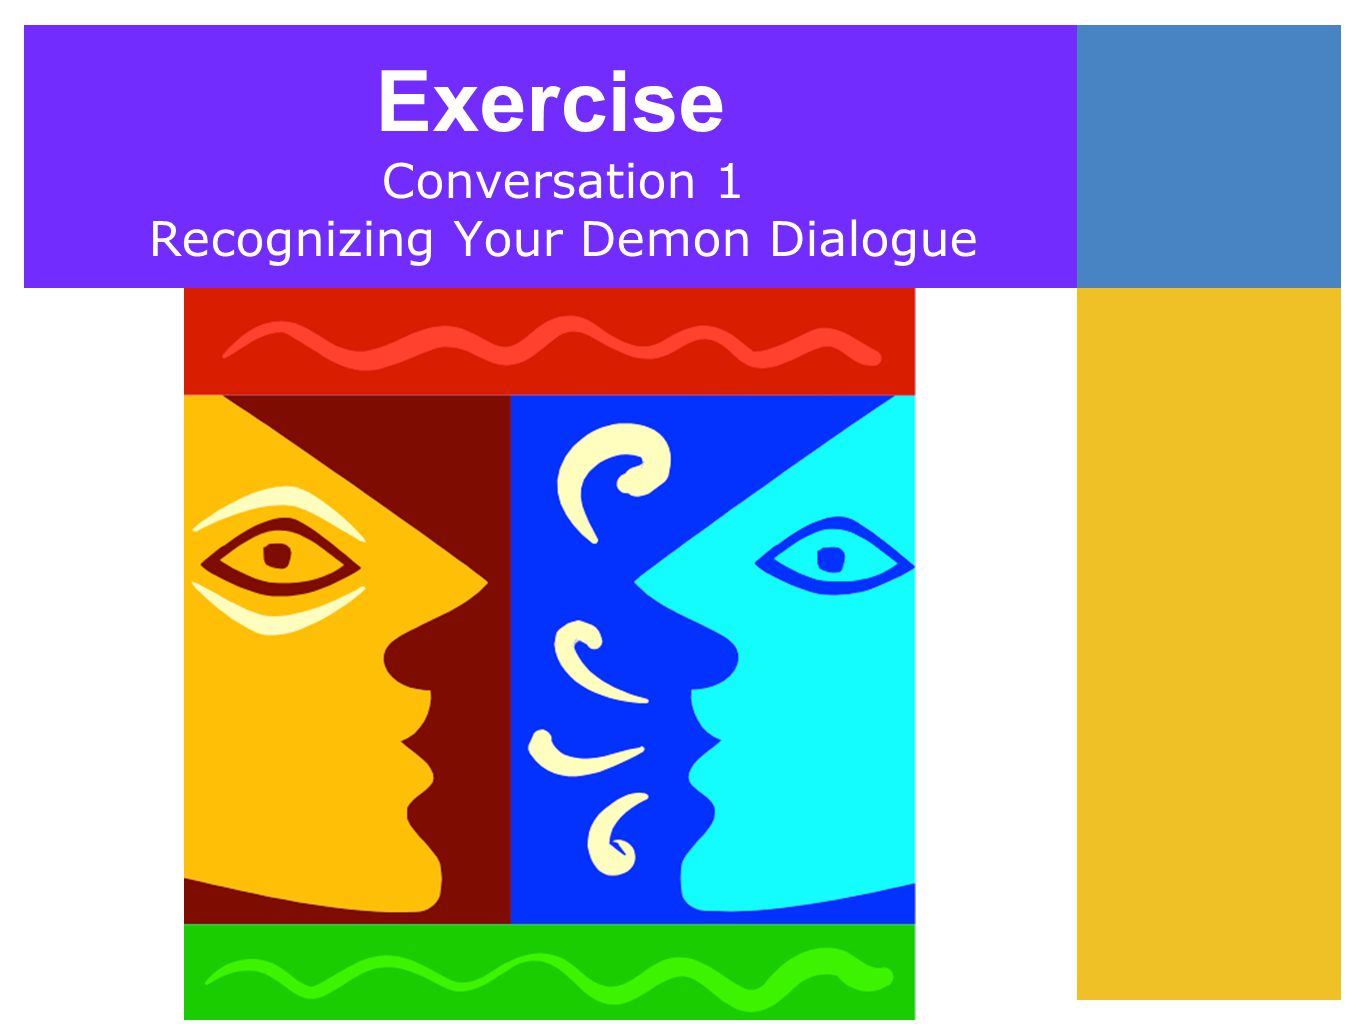 Exercise Conversation 1 Recognizing Your Demon Dialogue